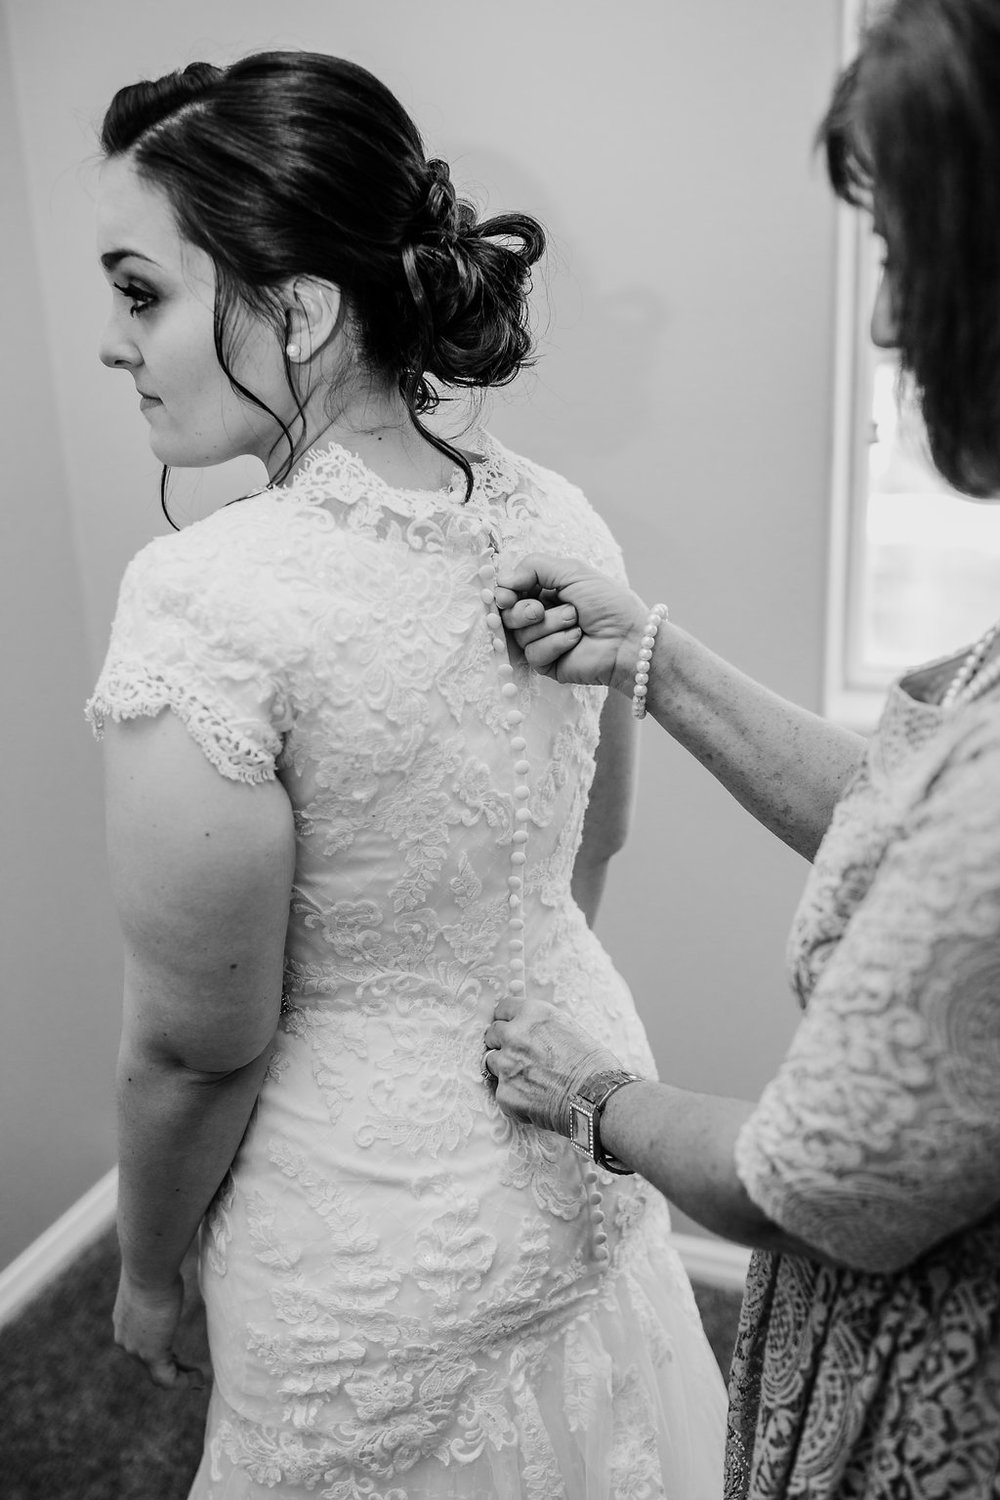 bride wedding day prep button down wedding dress black and white wedding photography utah